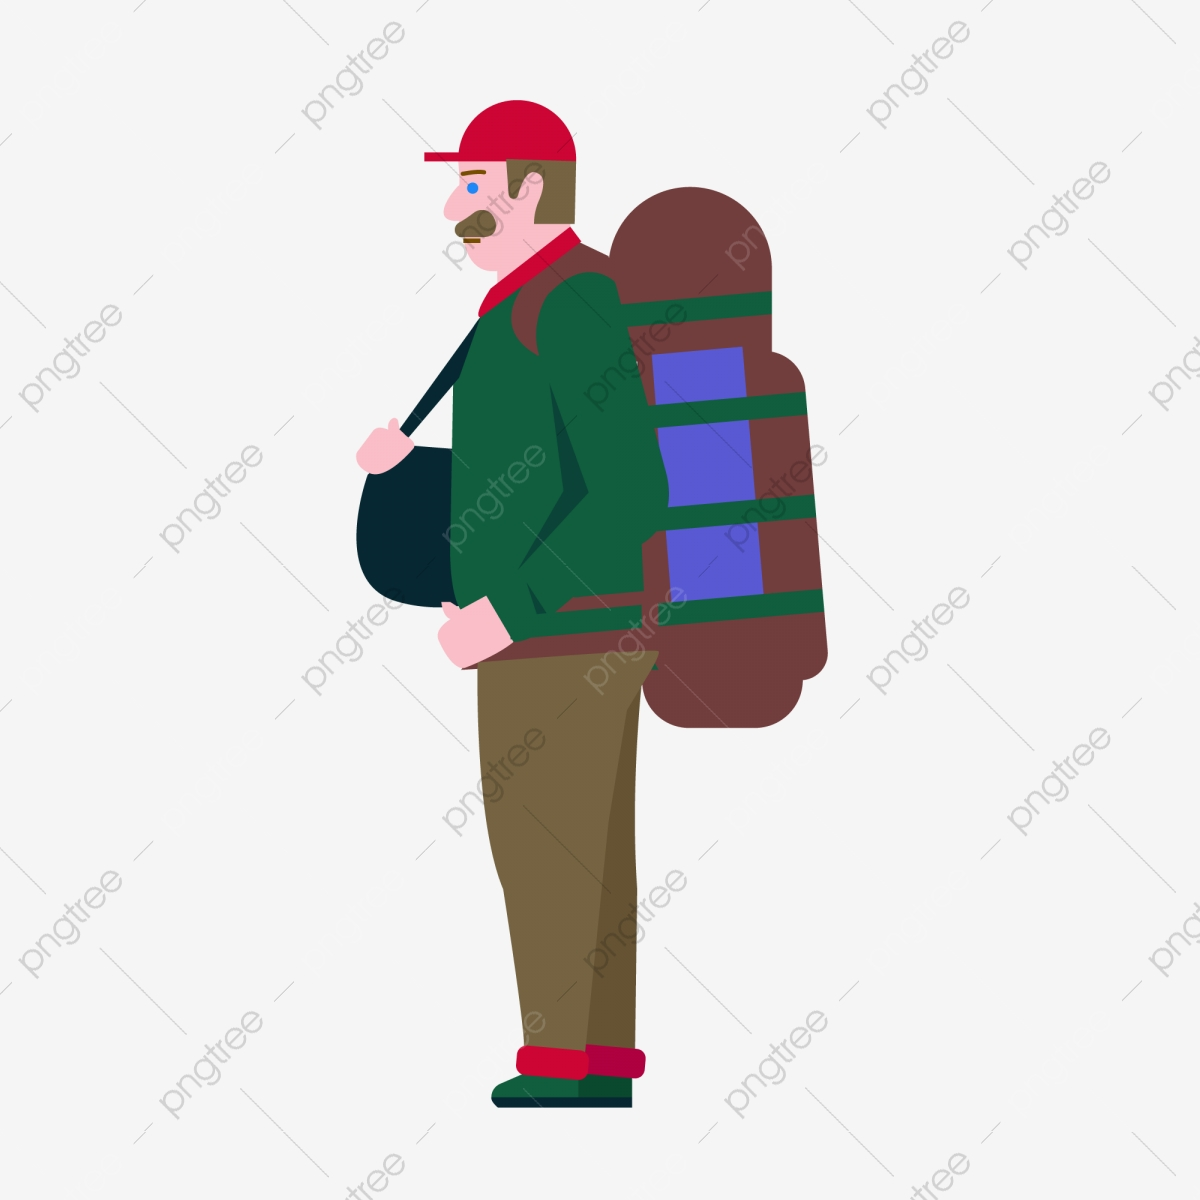 Boy Carrying Luggage Backpack Hand Drawing Boy Carrying Luggage Backpack Tourism Travel Png Transparent Image And Clipart For Free Download